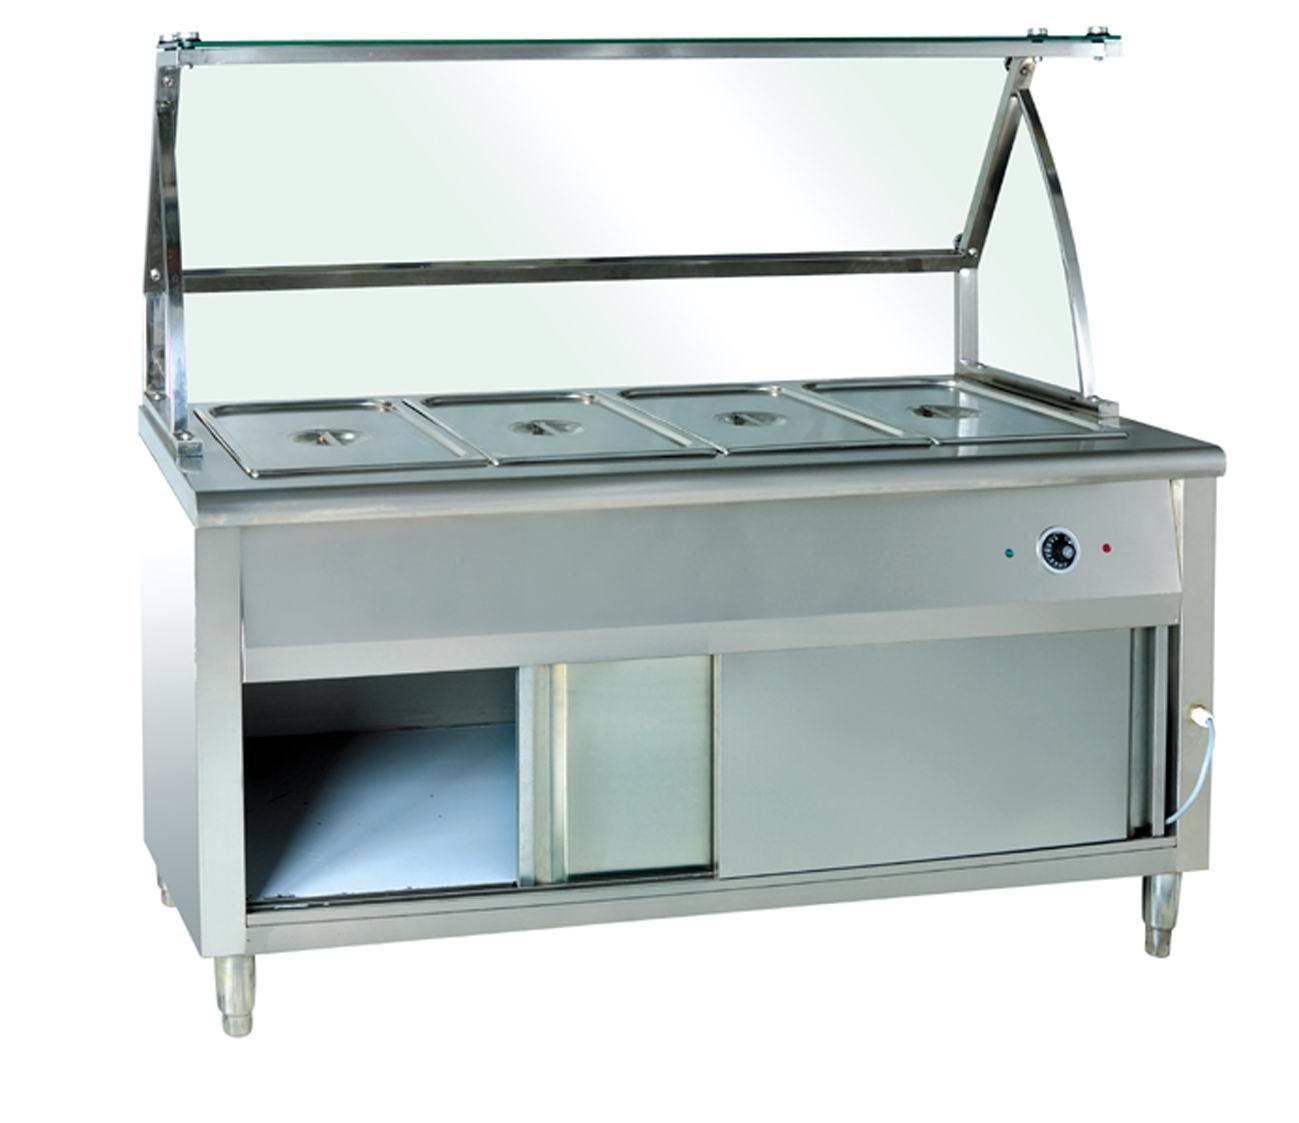 Commercial Food Warmer Cabinet ~ China commercial food warmer trolley wm with